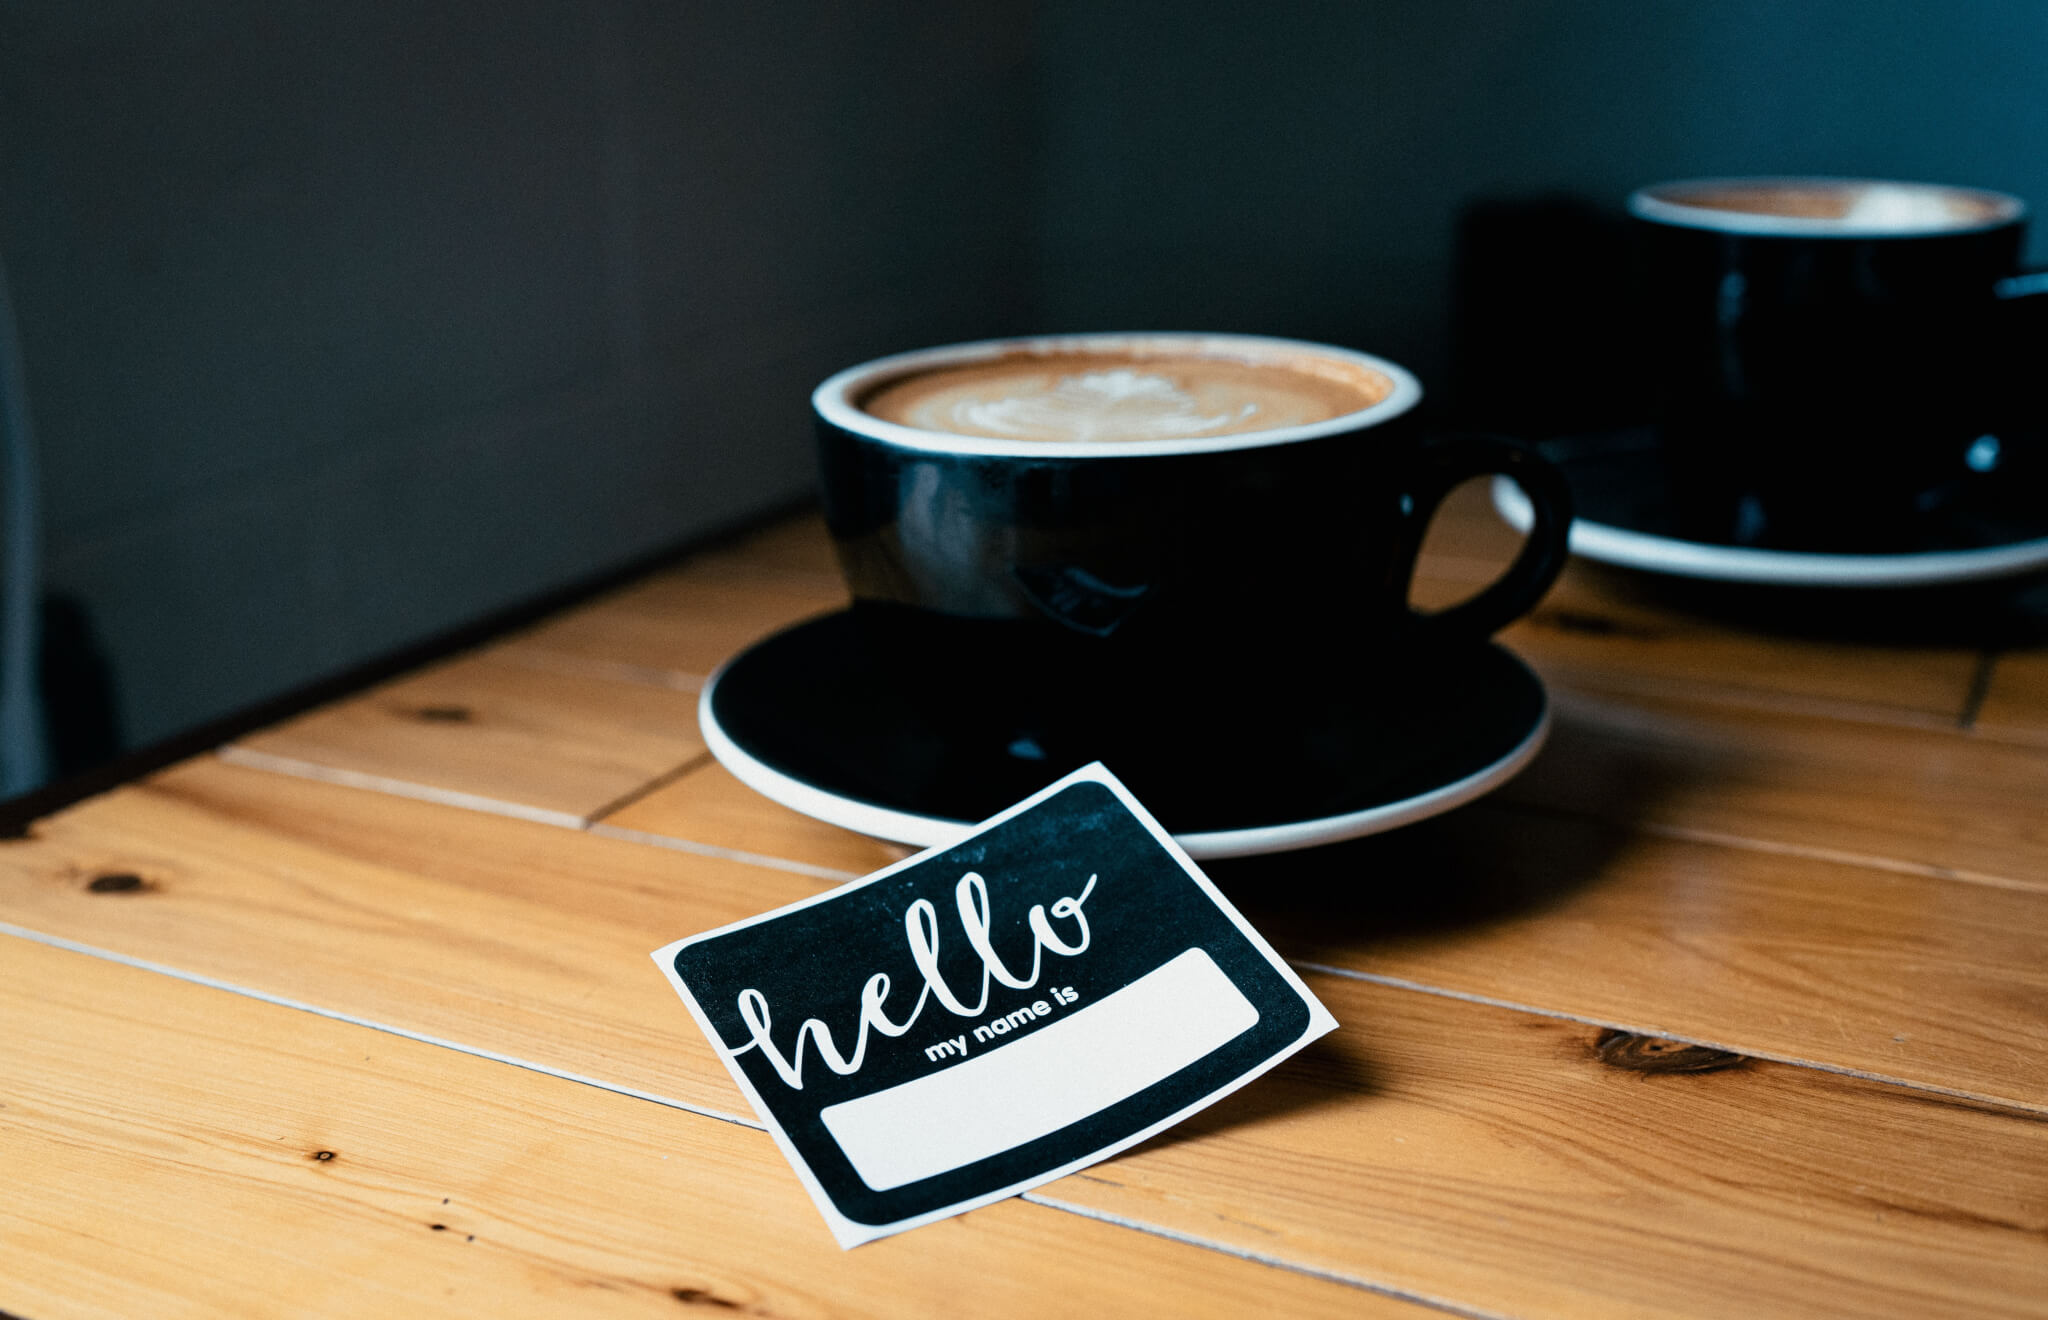 Cup of coffee and a name tag on a table